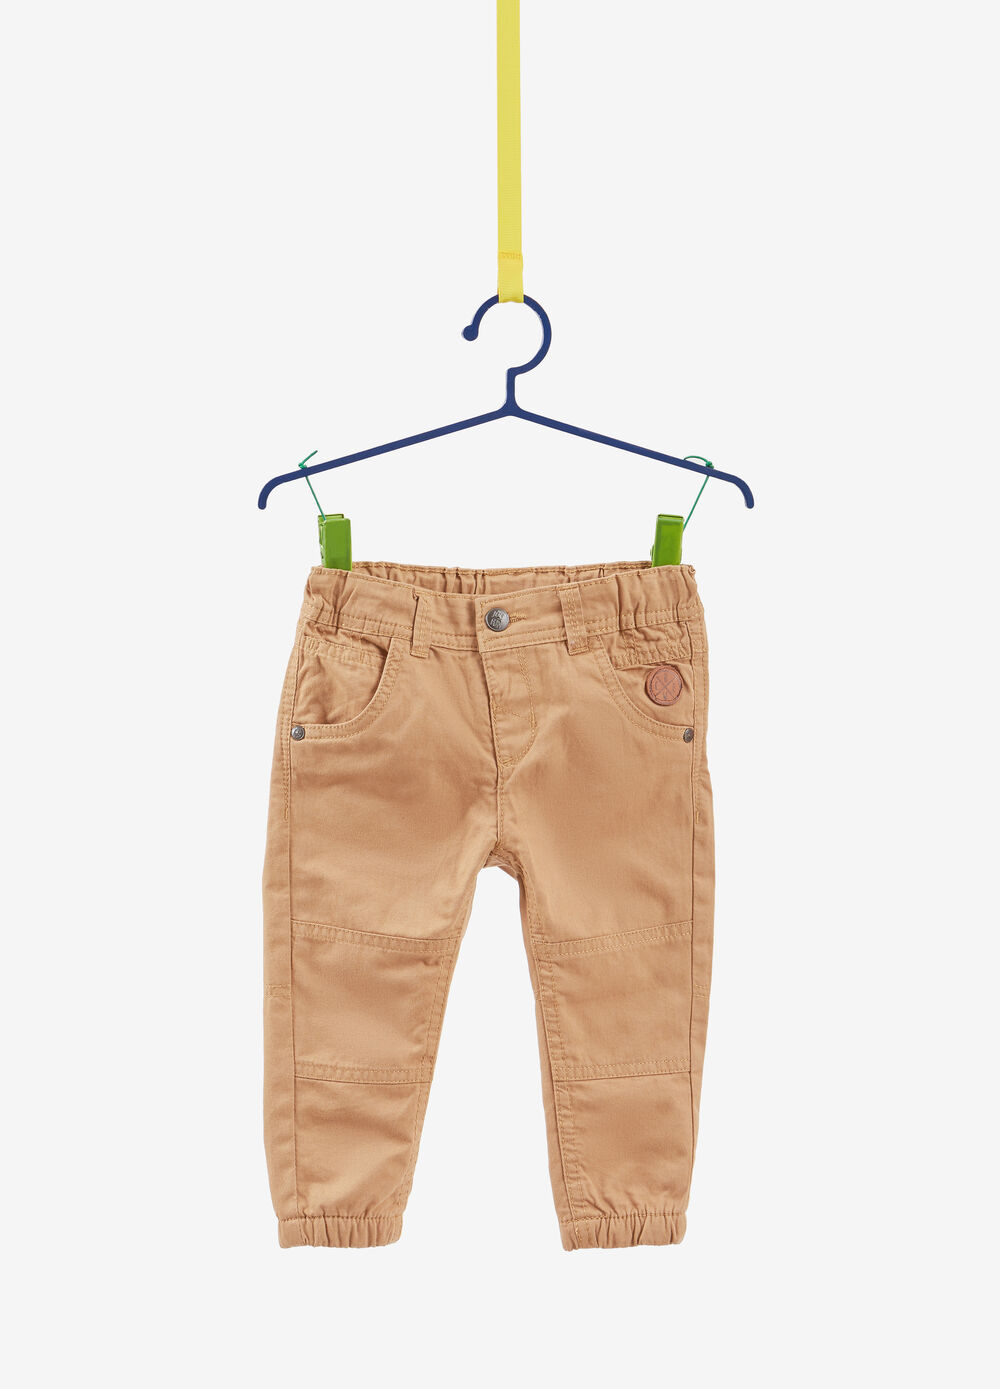 Solid colour 100% cotton twill trousers